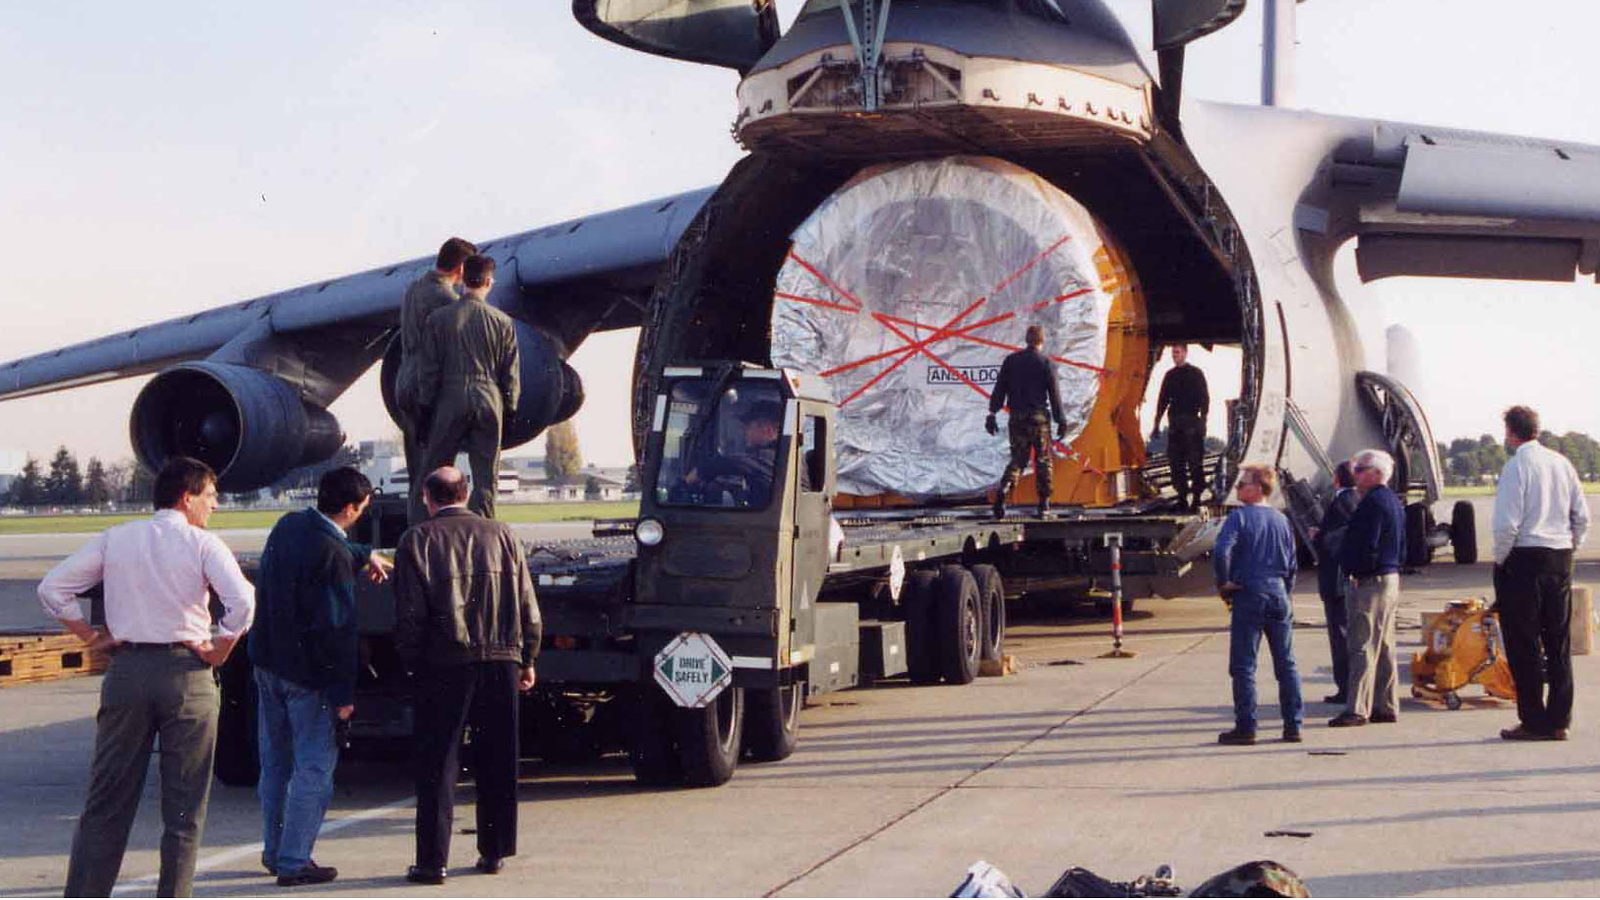 Image: BaBar coil arrives in cargo plane